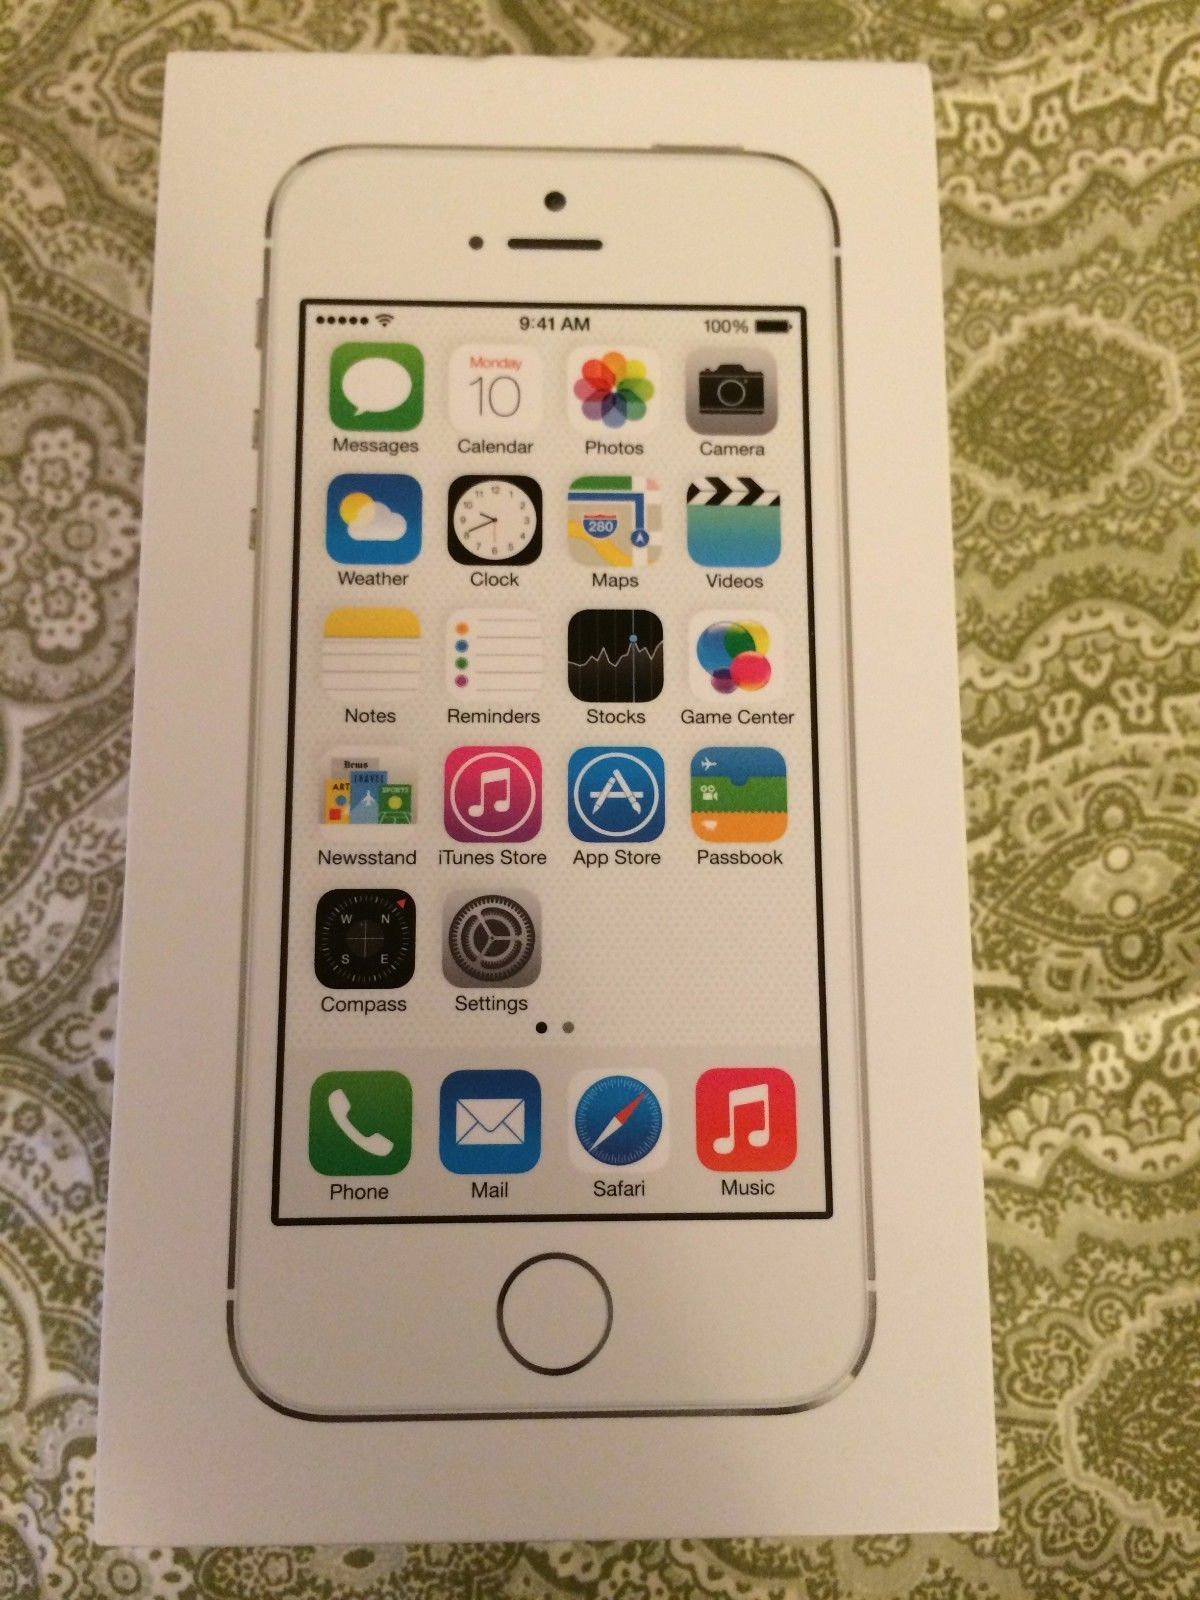 Apple iPhone 5s (Latest Model) - 16GB - Silver (AT&T) Smartphone - $400